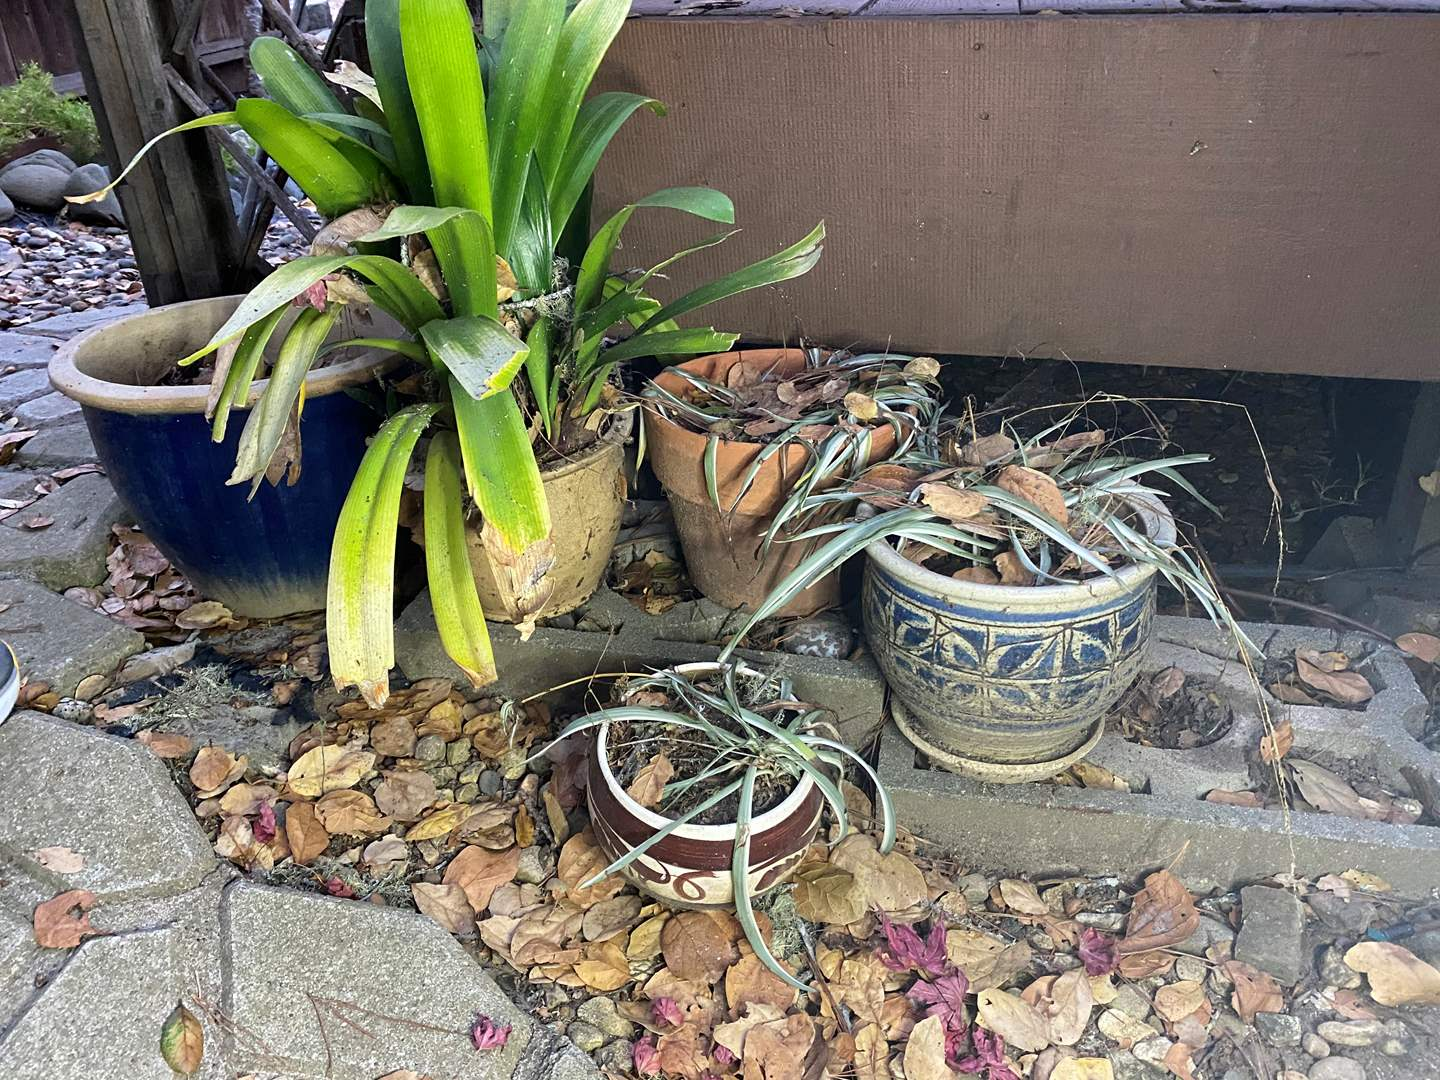 Lot # 99 - GROUPING OF CERAMIC POTS WITH PLANTS (main image)